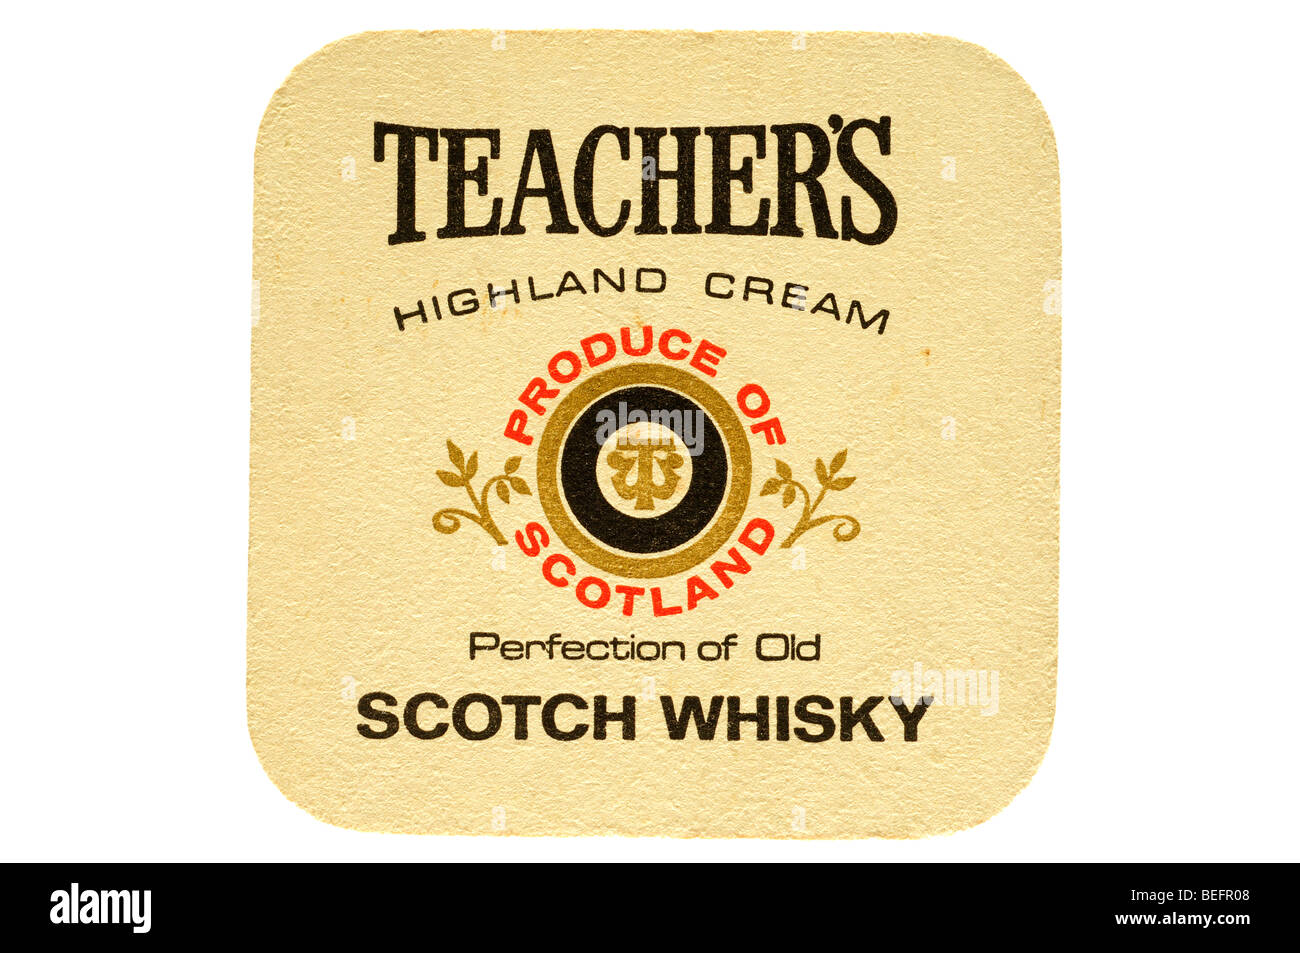 teachers highland cream produce of scotland perfection of old scotch whisky - Stock Image